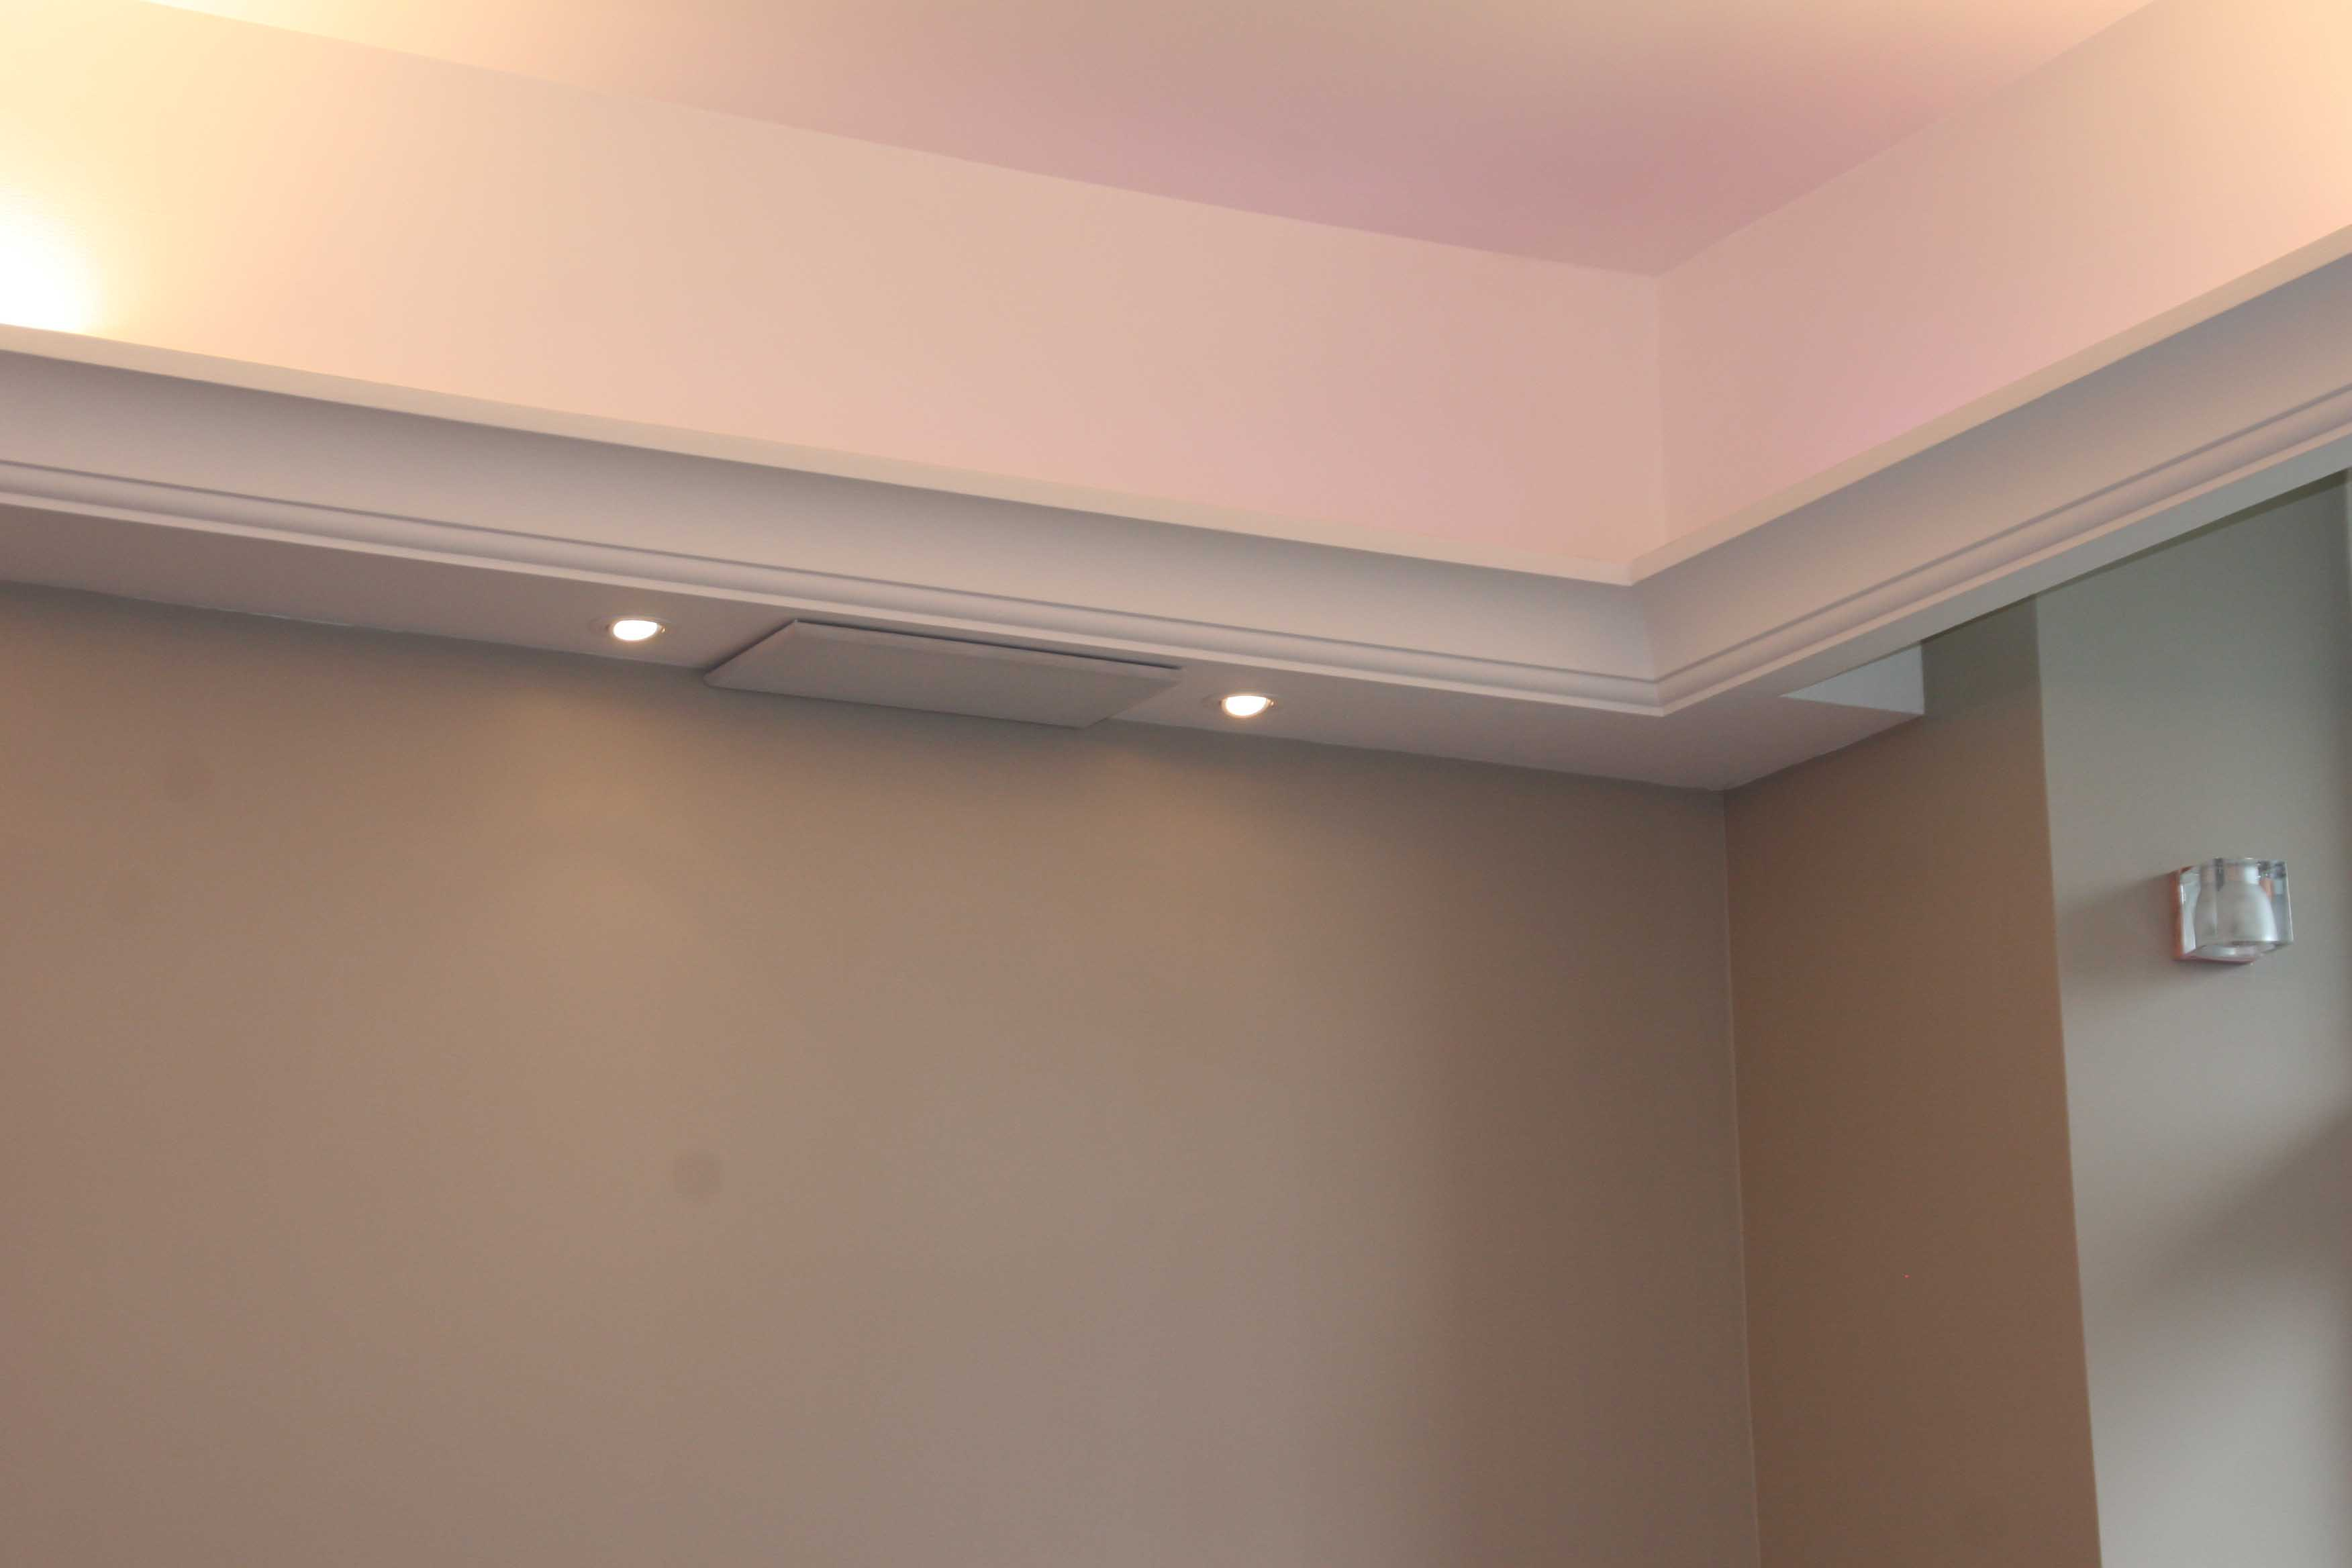 D coration plafond l art de mettre en valeur son for Faux plafond decoratif